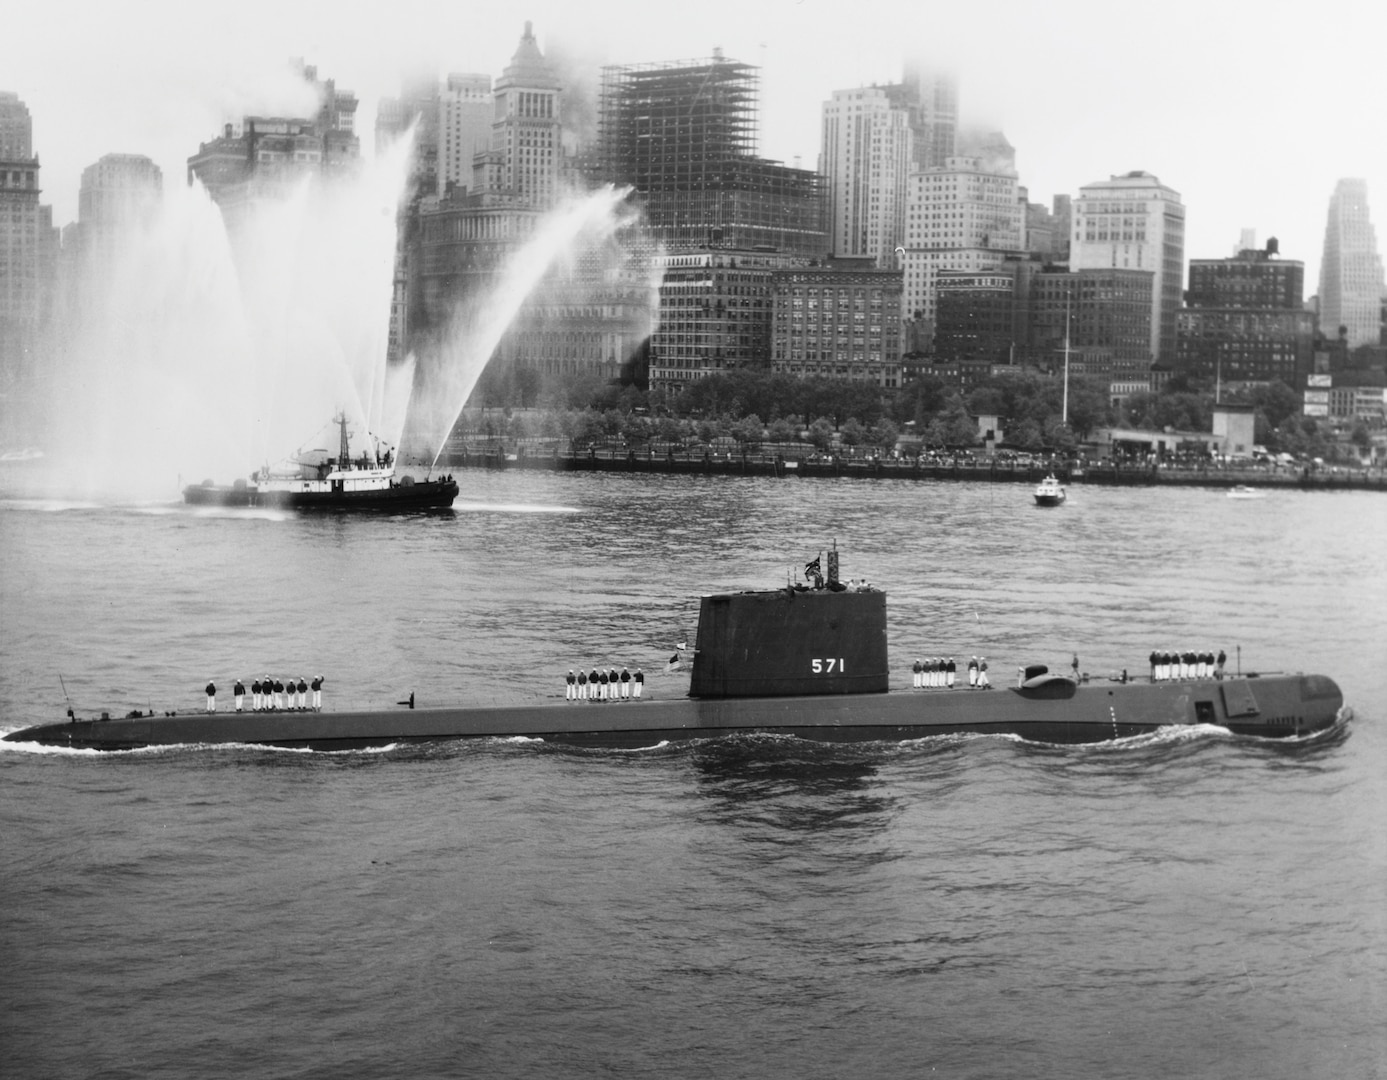 USS Nautilus entering New York harbor August 25, 1958, after voyage under